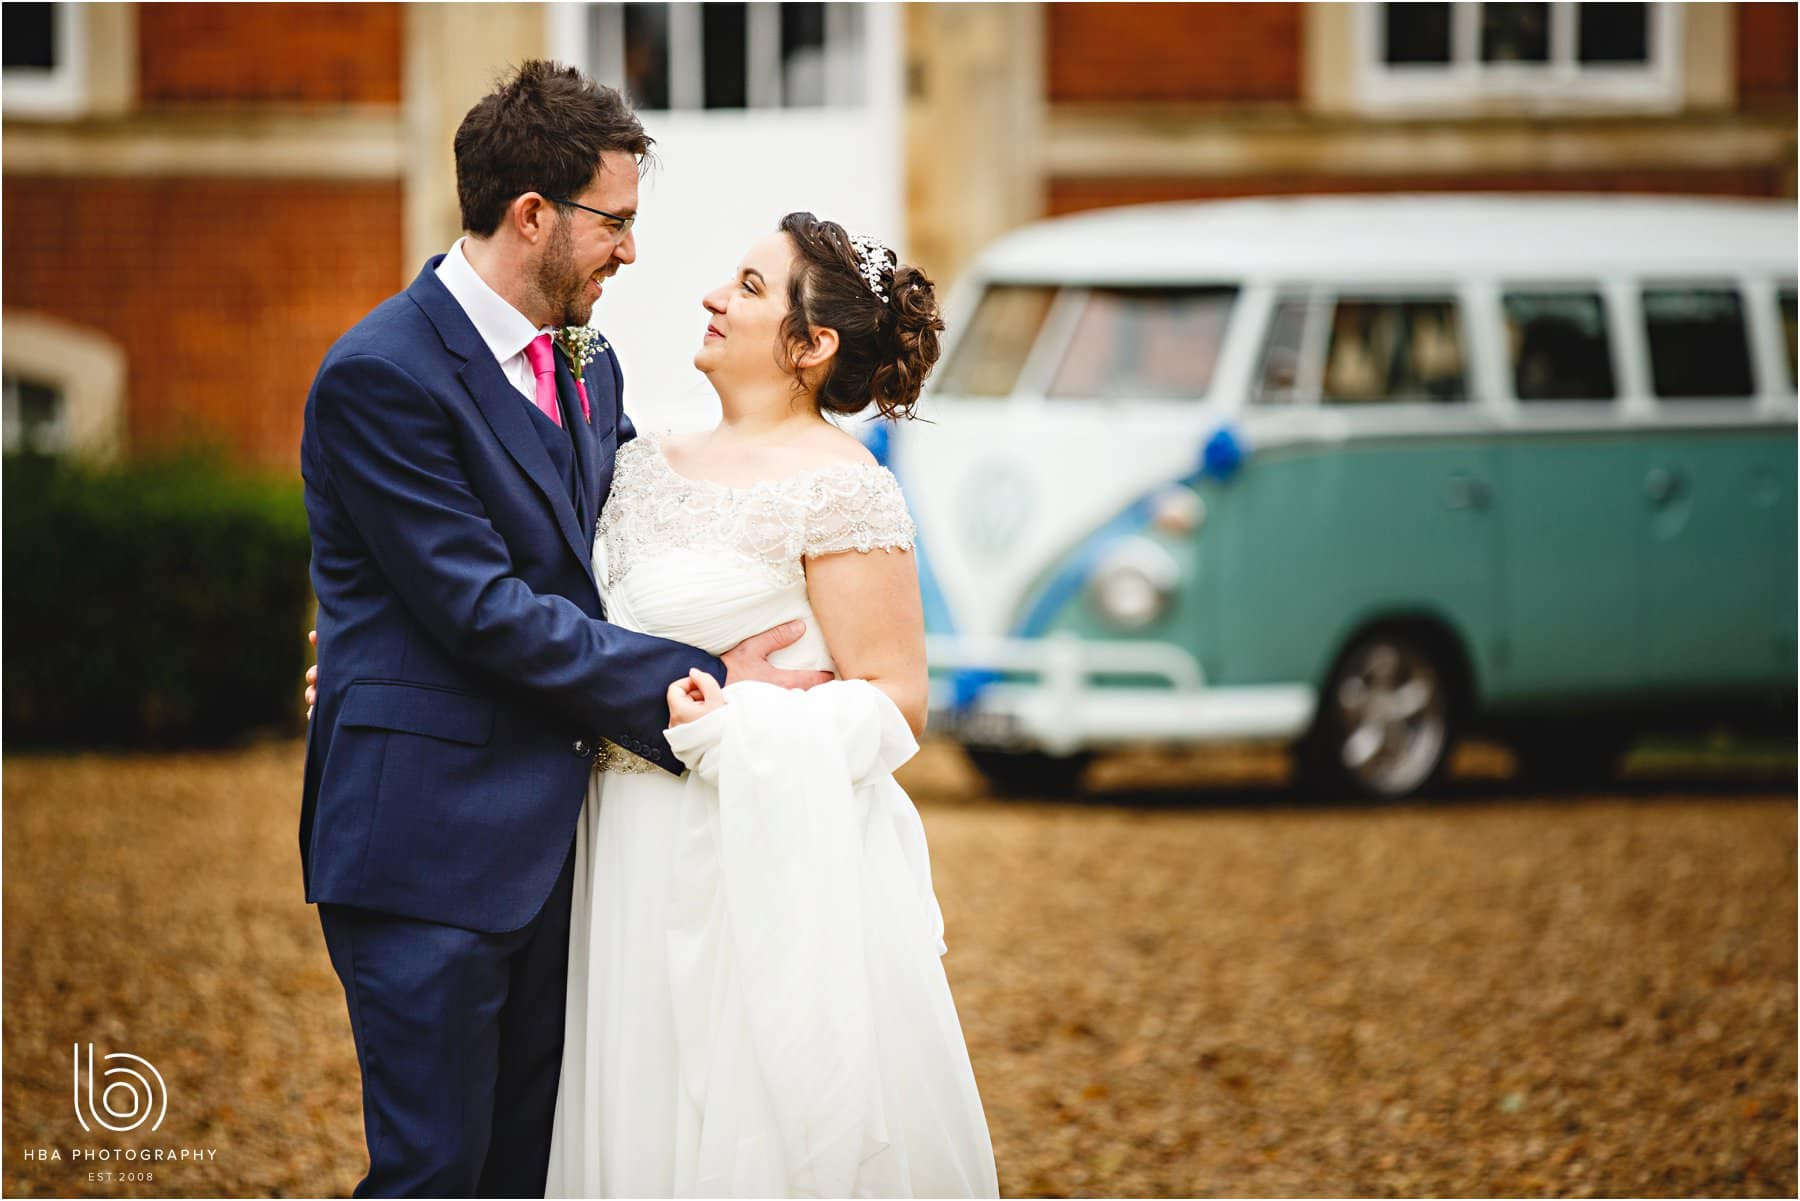 the bride & groom and their camper van